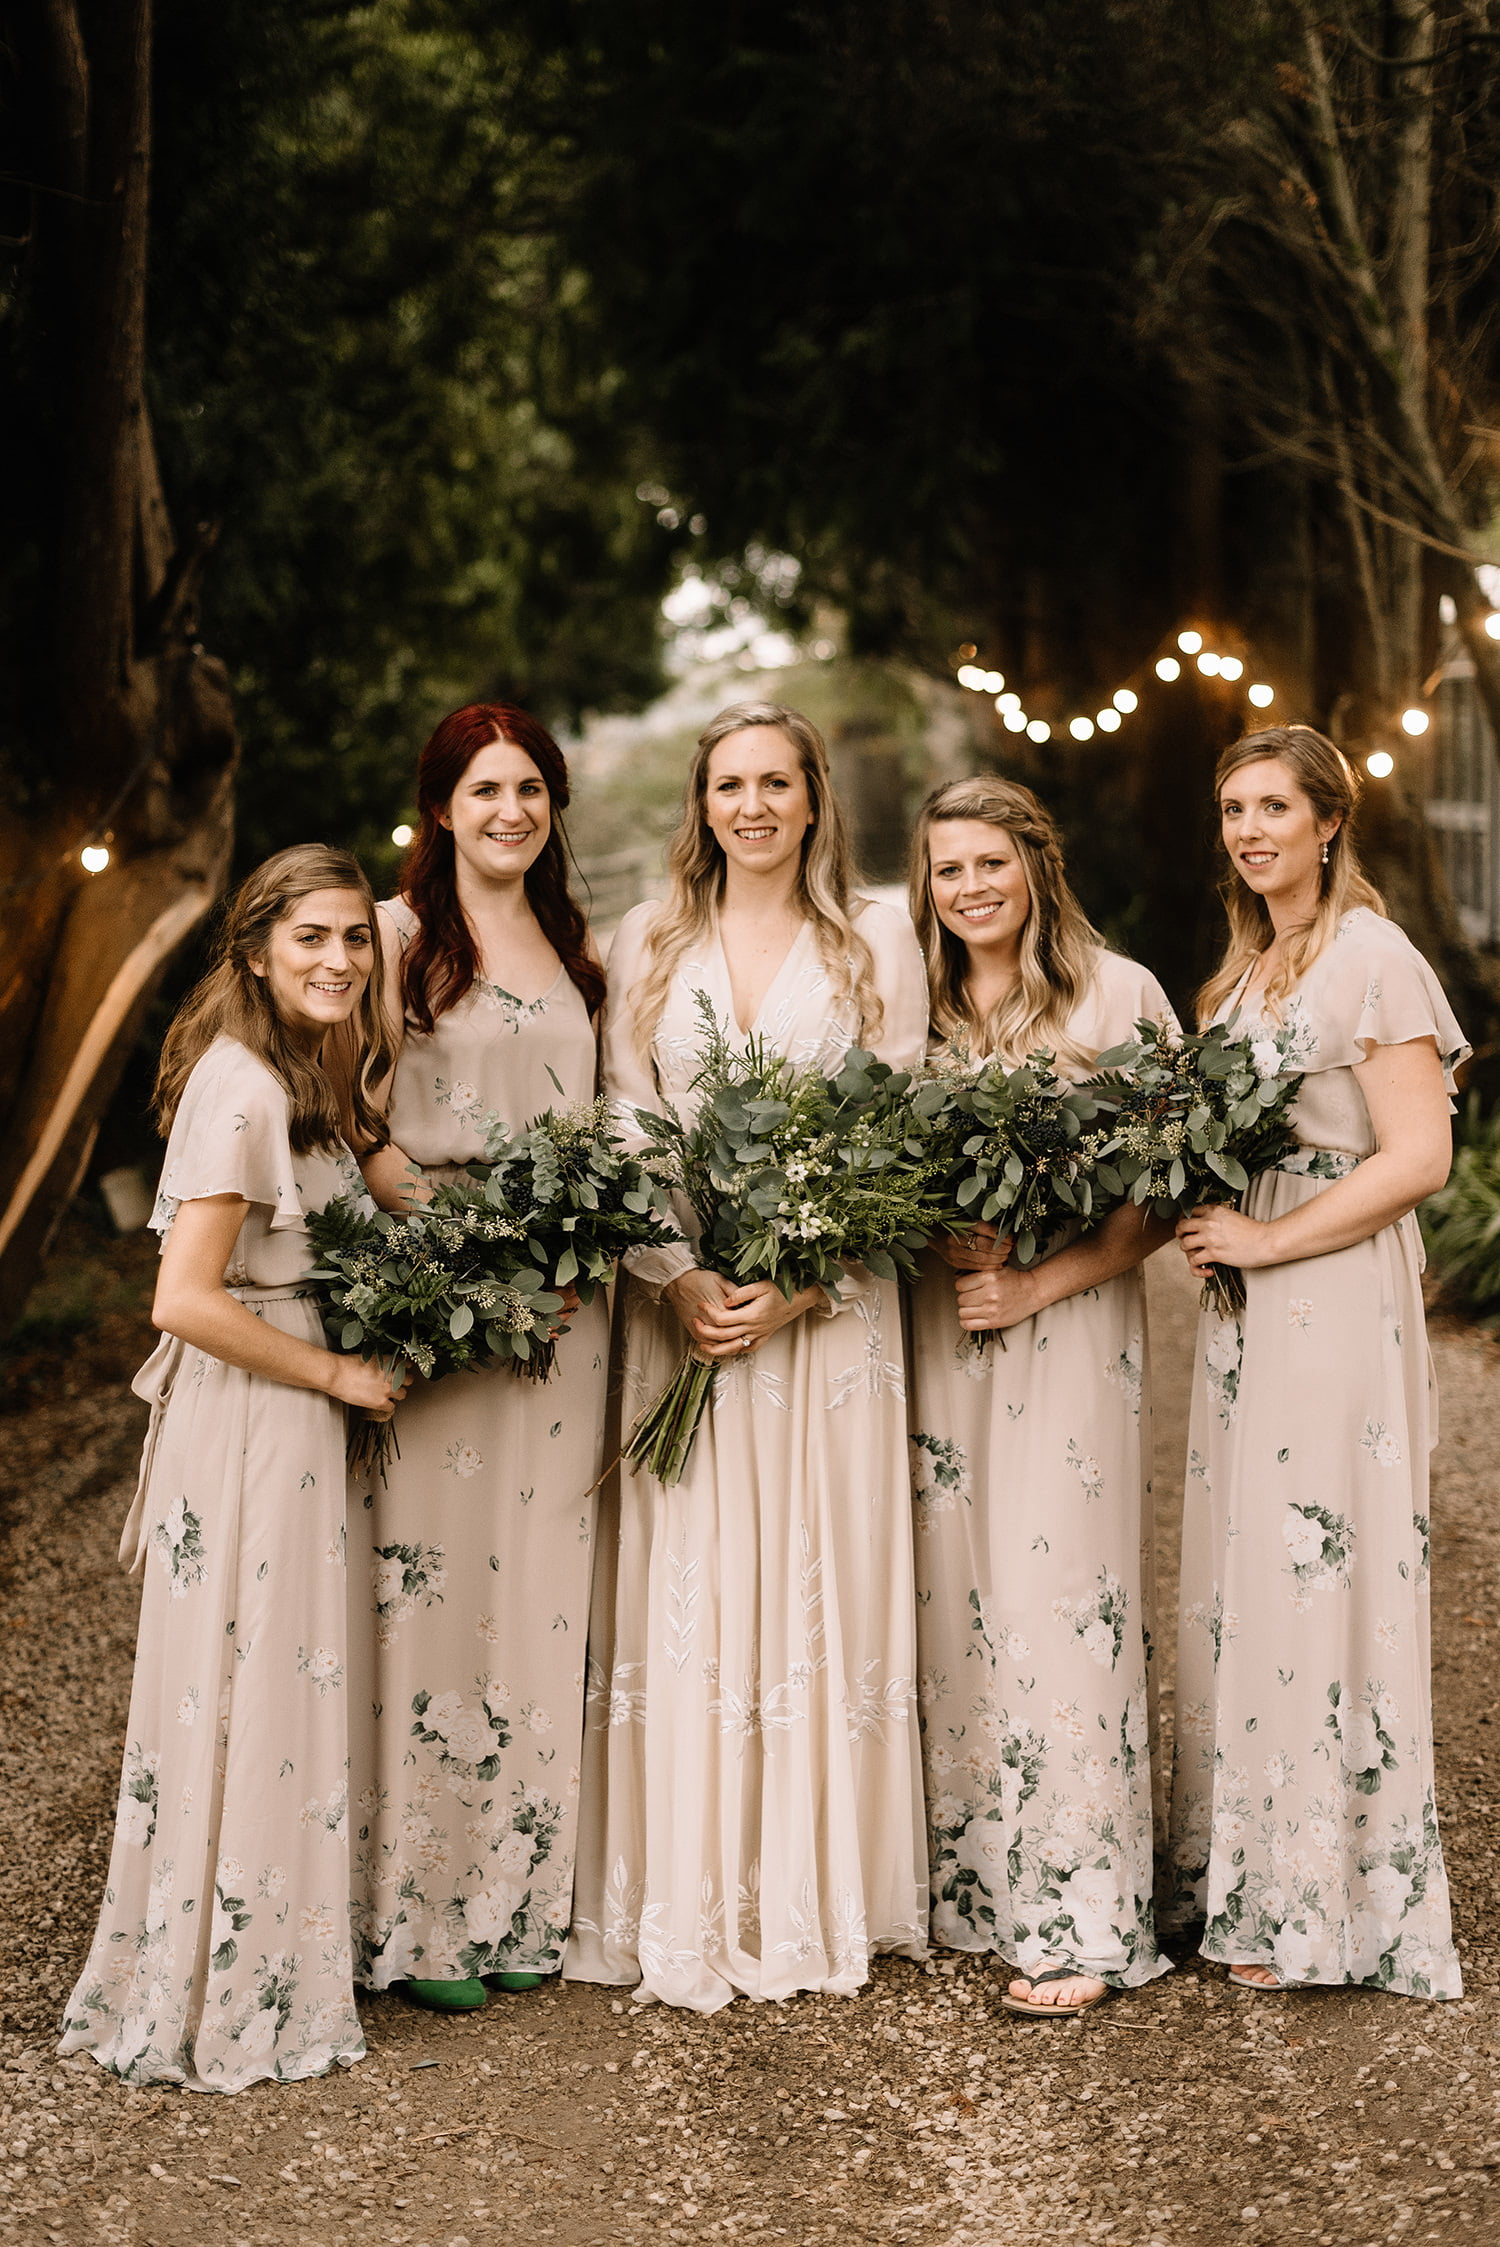 Your Guide To Choosing the Perfect Bridesmaid Dresses